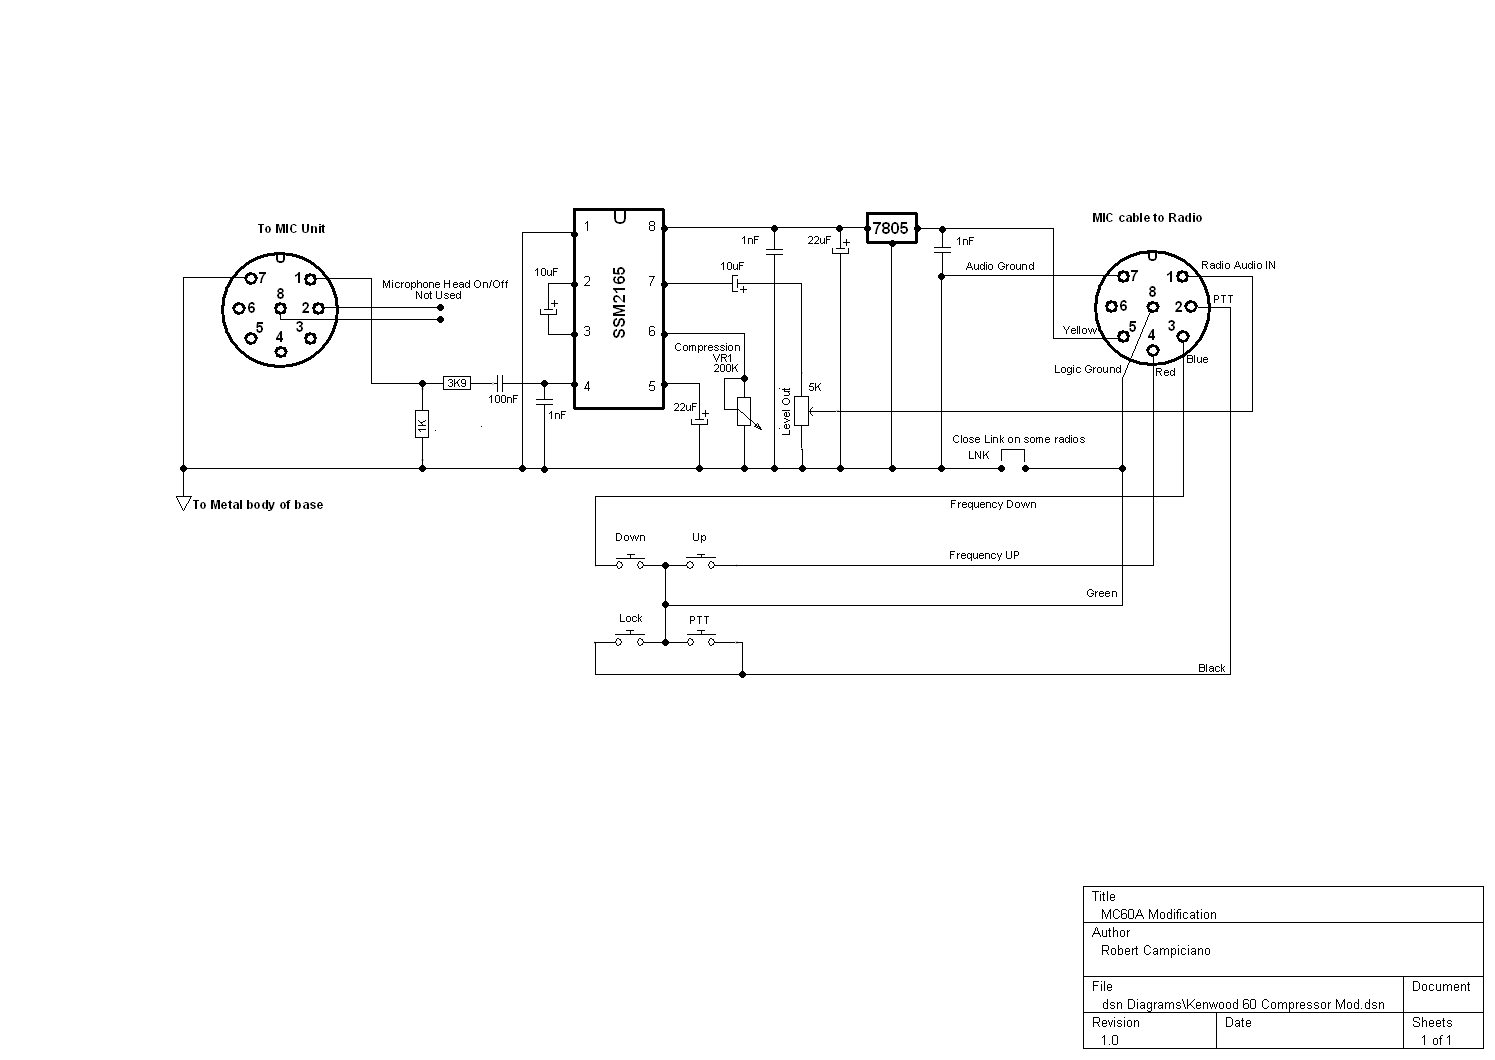 [SCHEMATICS_4UK]  8B7 Kenwood Mc 50 Wiring Diagram | Wiring Library | Kenwood Mc 50 Wiring Diagram |  | Wiring Library